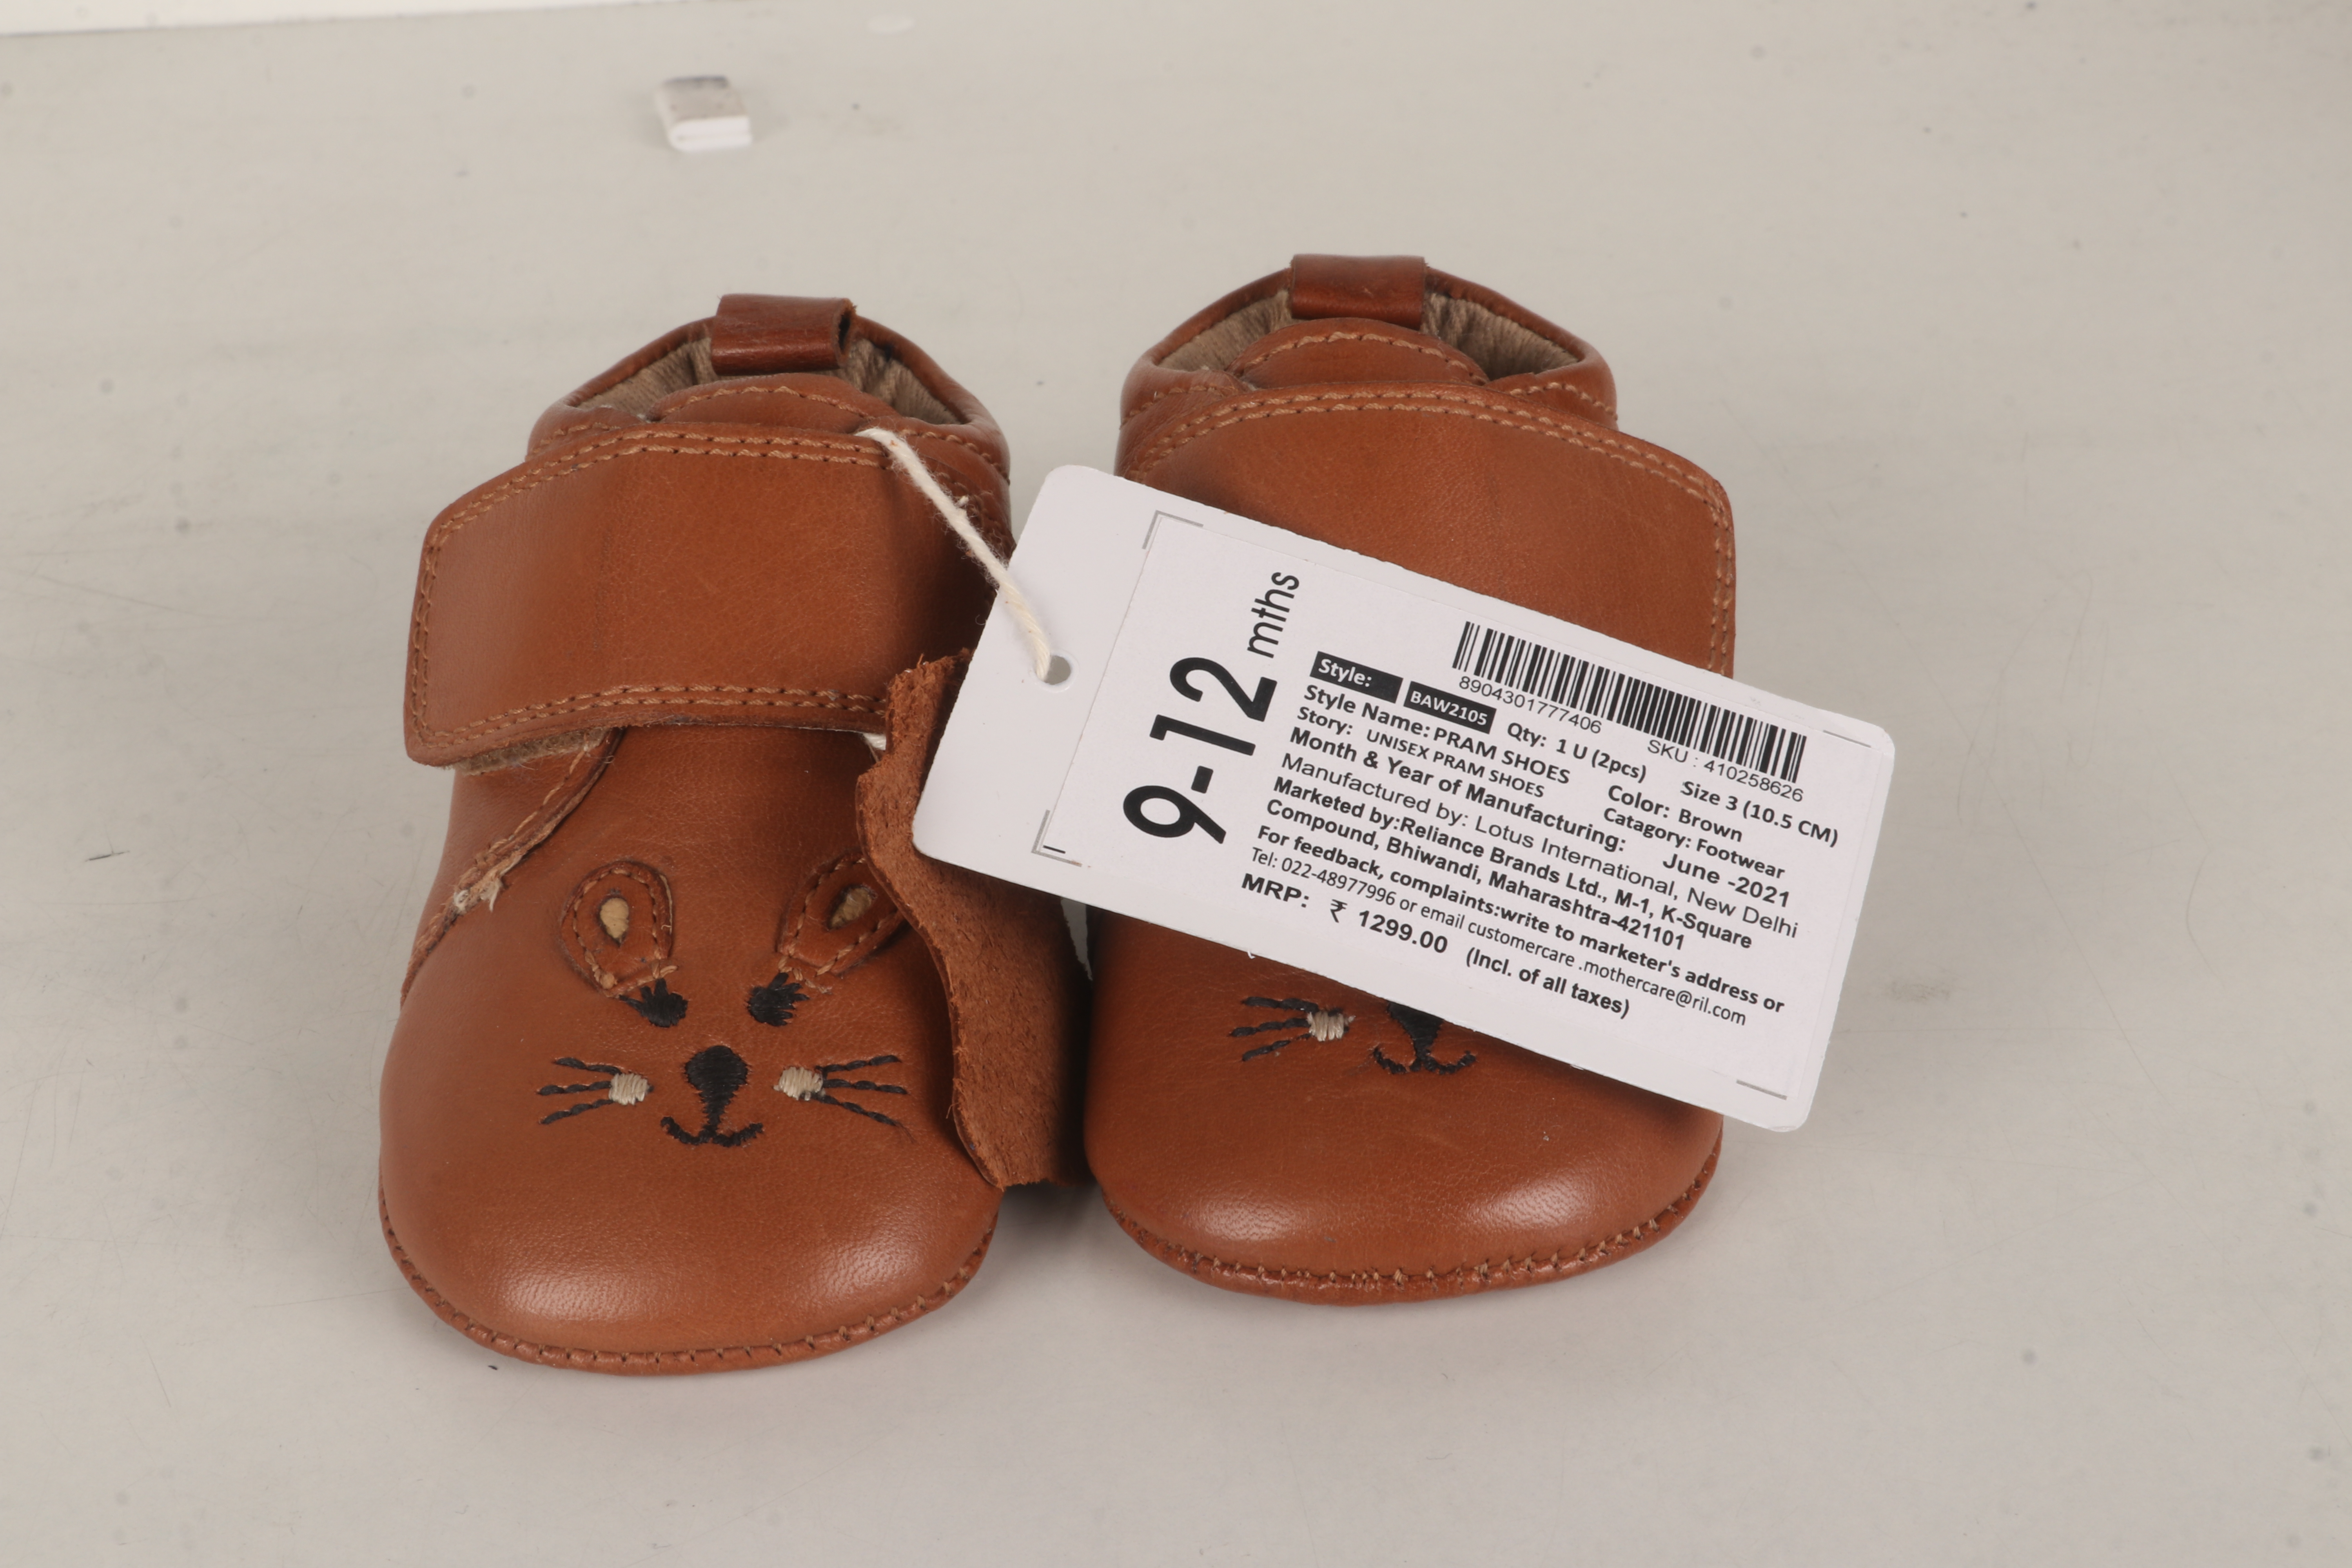 Mothercare | Unisex Pram Shoes Mouse Design - Brown